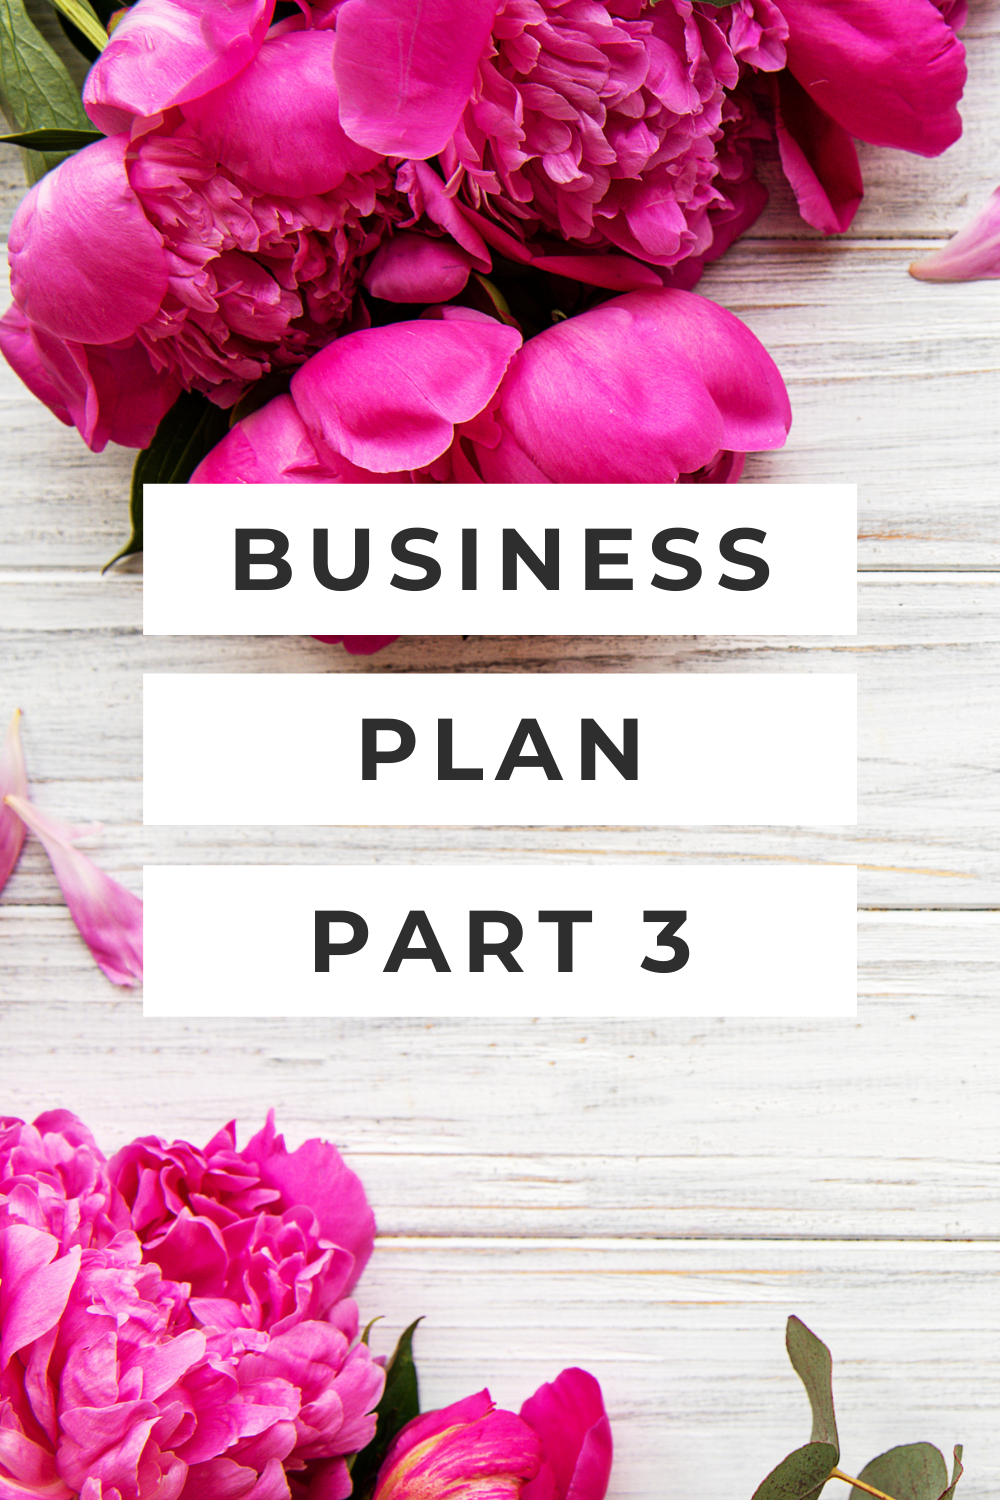 business plan part 3 podcast business for florists